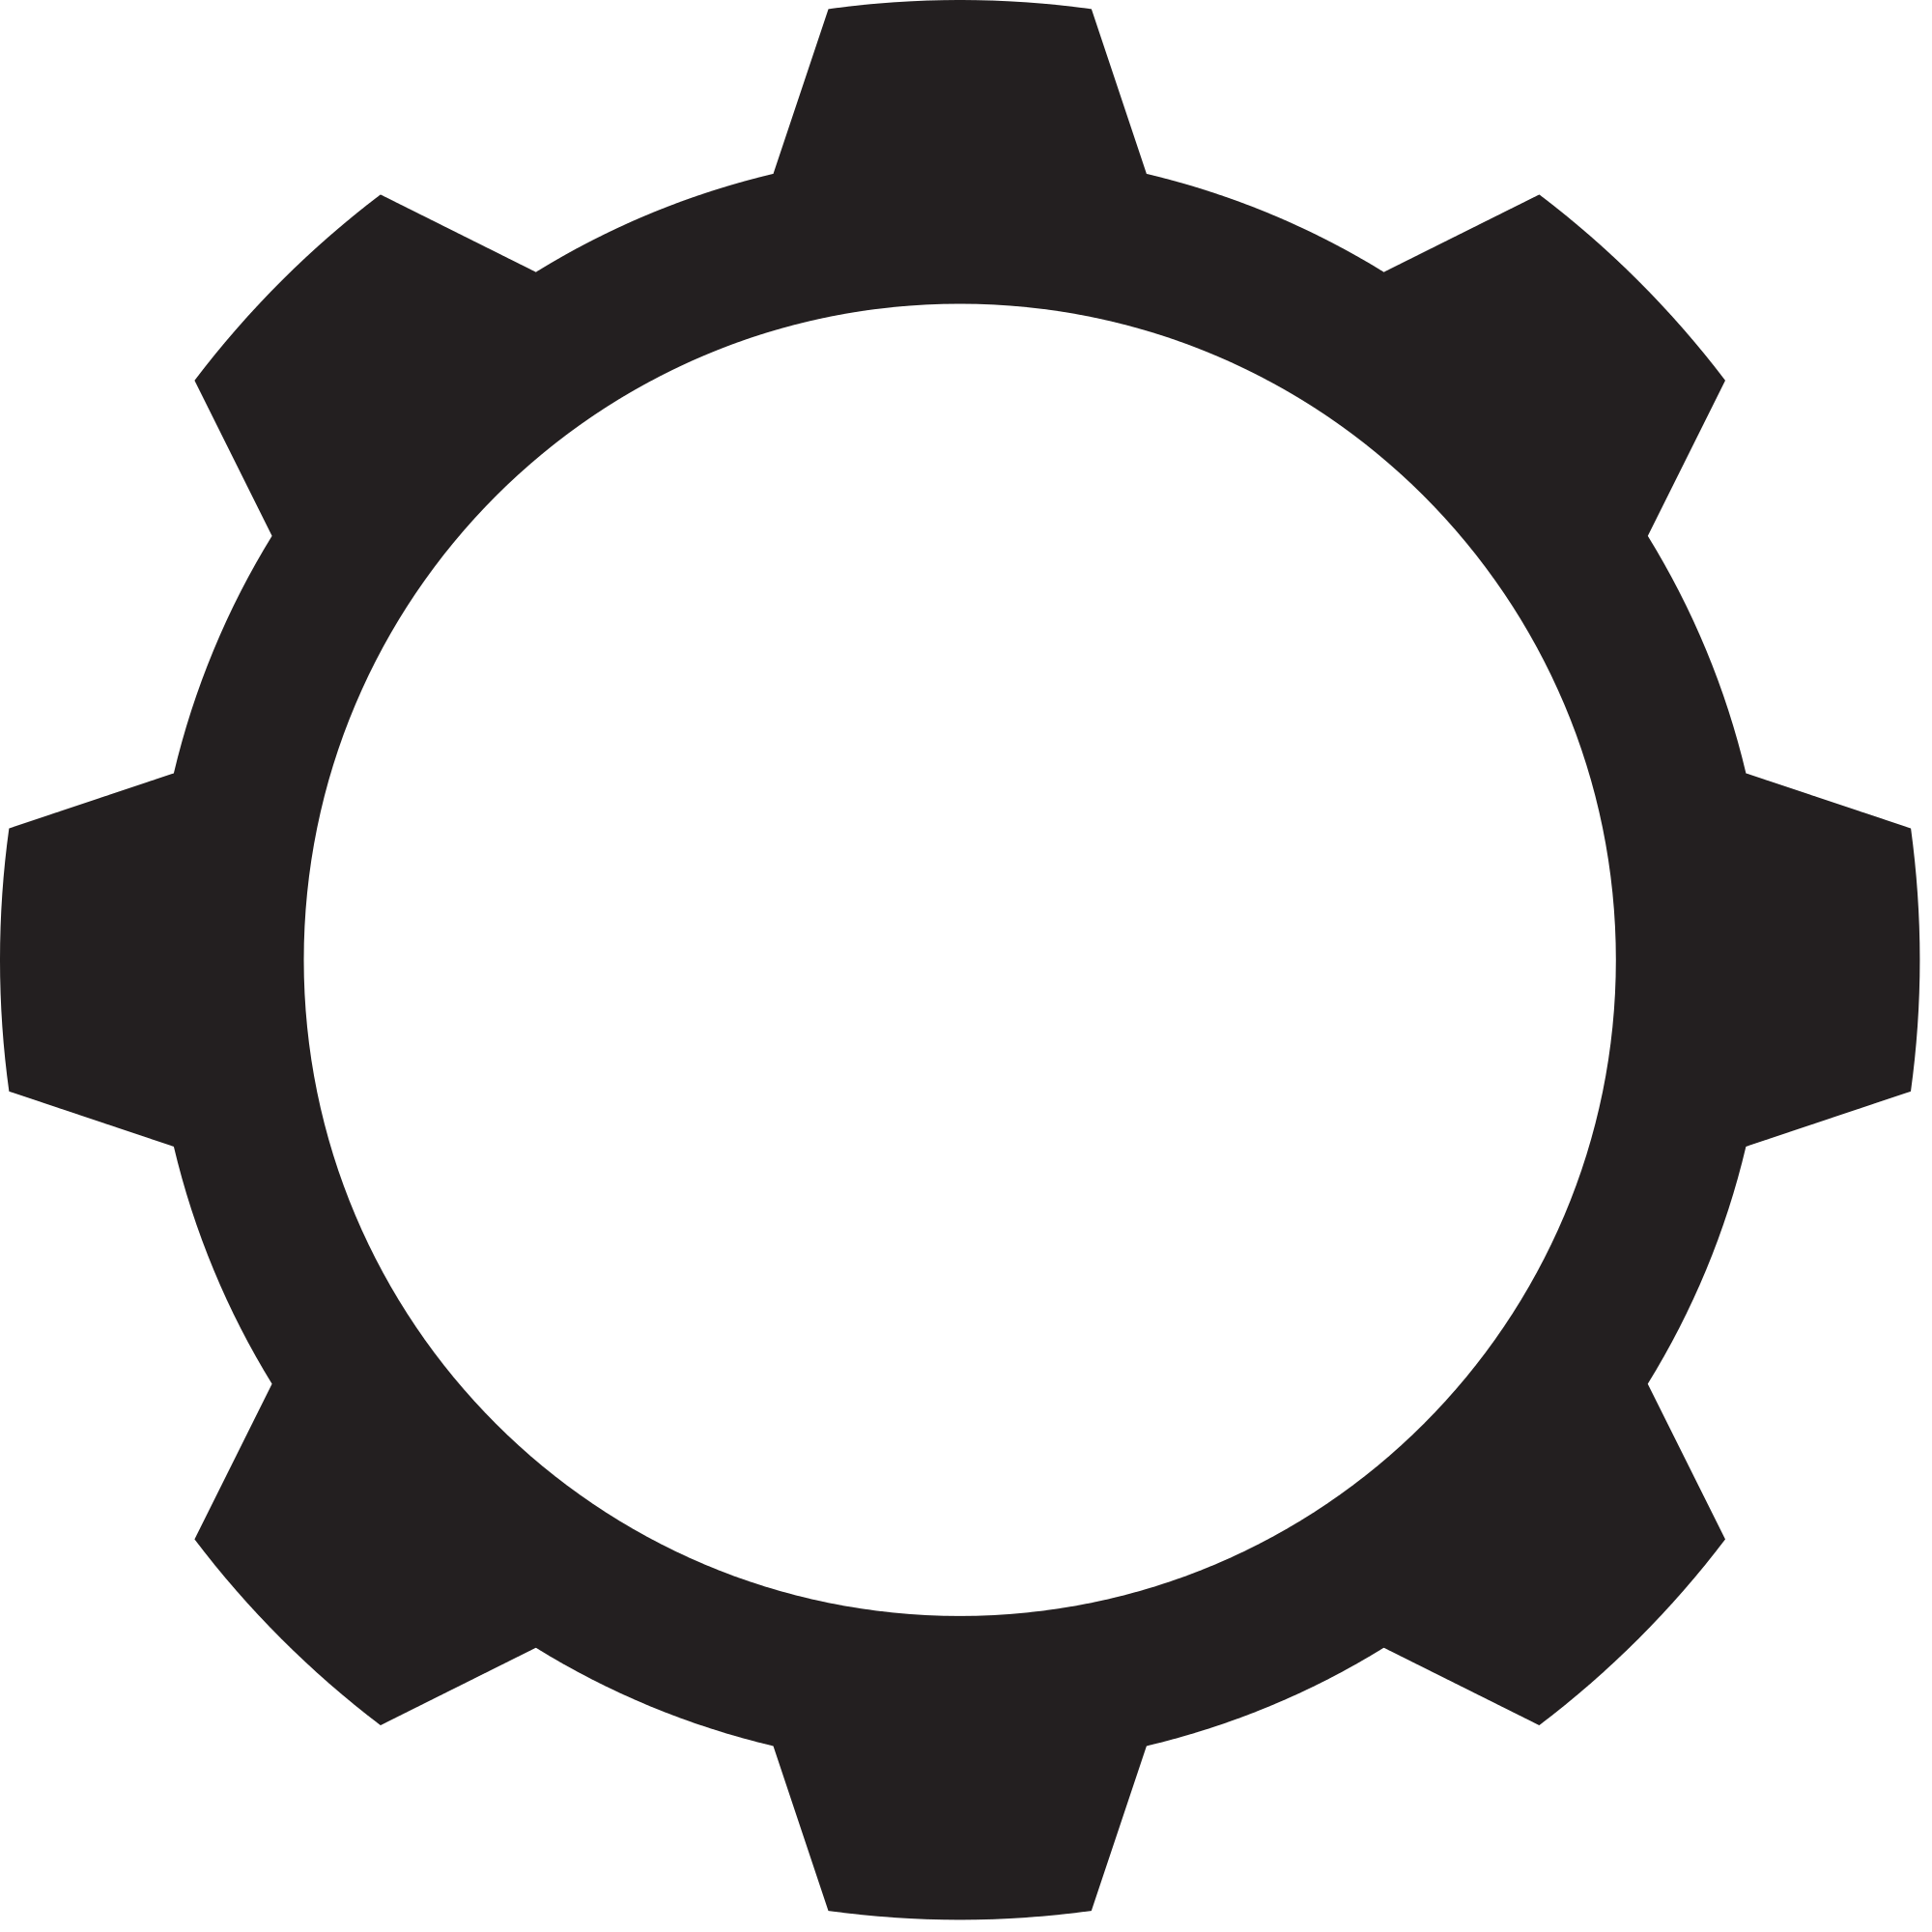 Shape svg. File gear black wikimedia